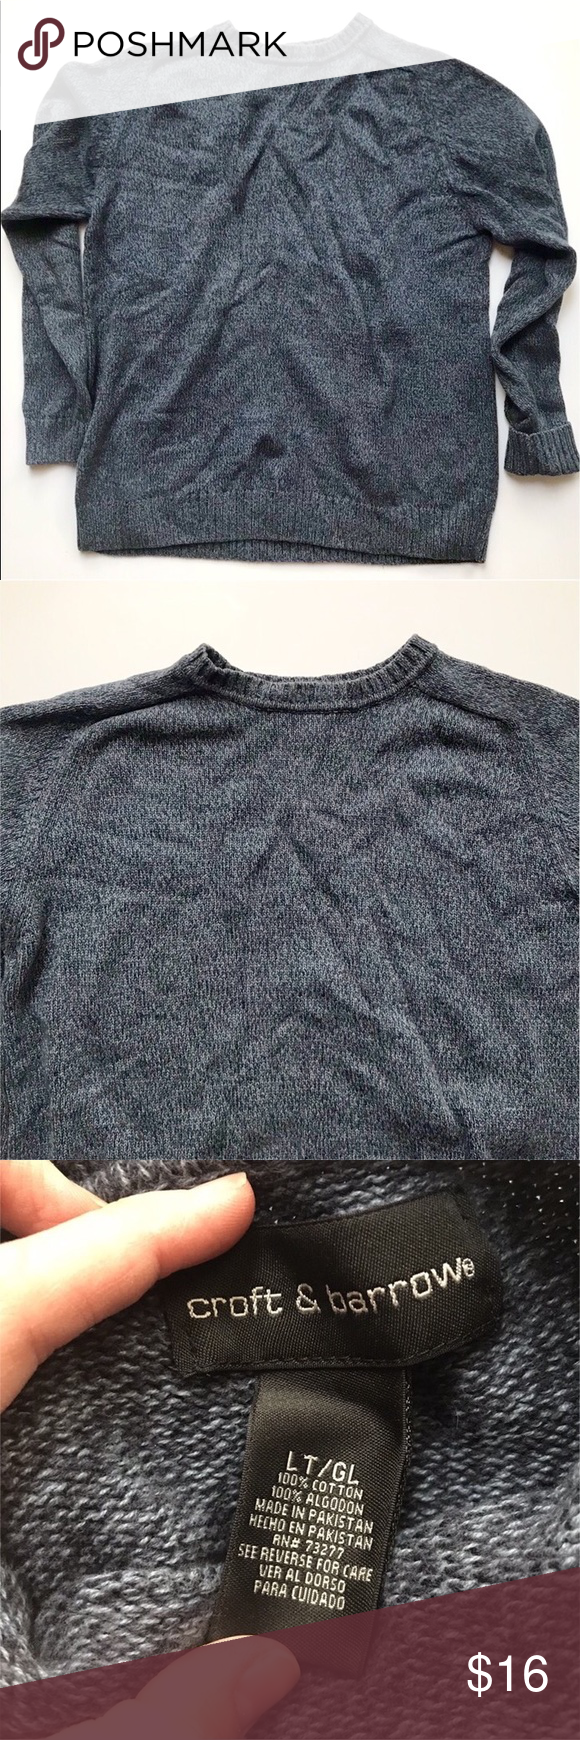 Croft Barrow Men S Crewneck Sweater Color Is A Mix Of Dark Blue And Grey Great Condition Husband Closet Cl Sweaters Crew Neck Sweater Men Crew Neck Sweater [ 1740 x 580 Pixel ]